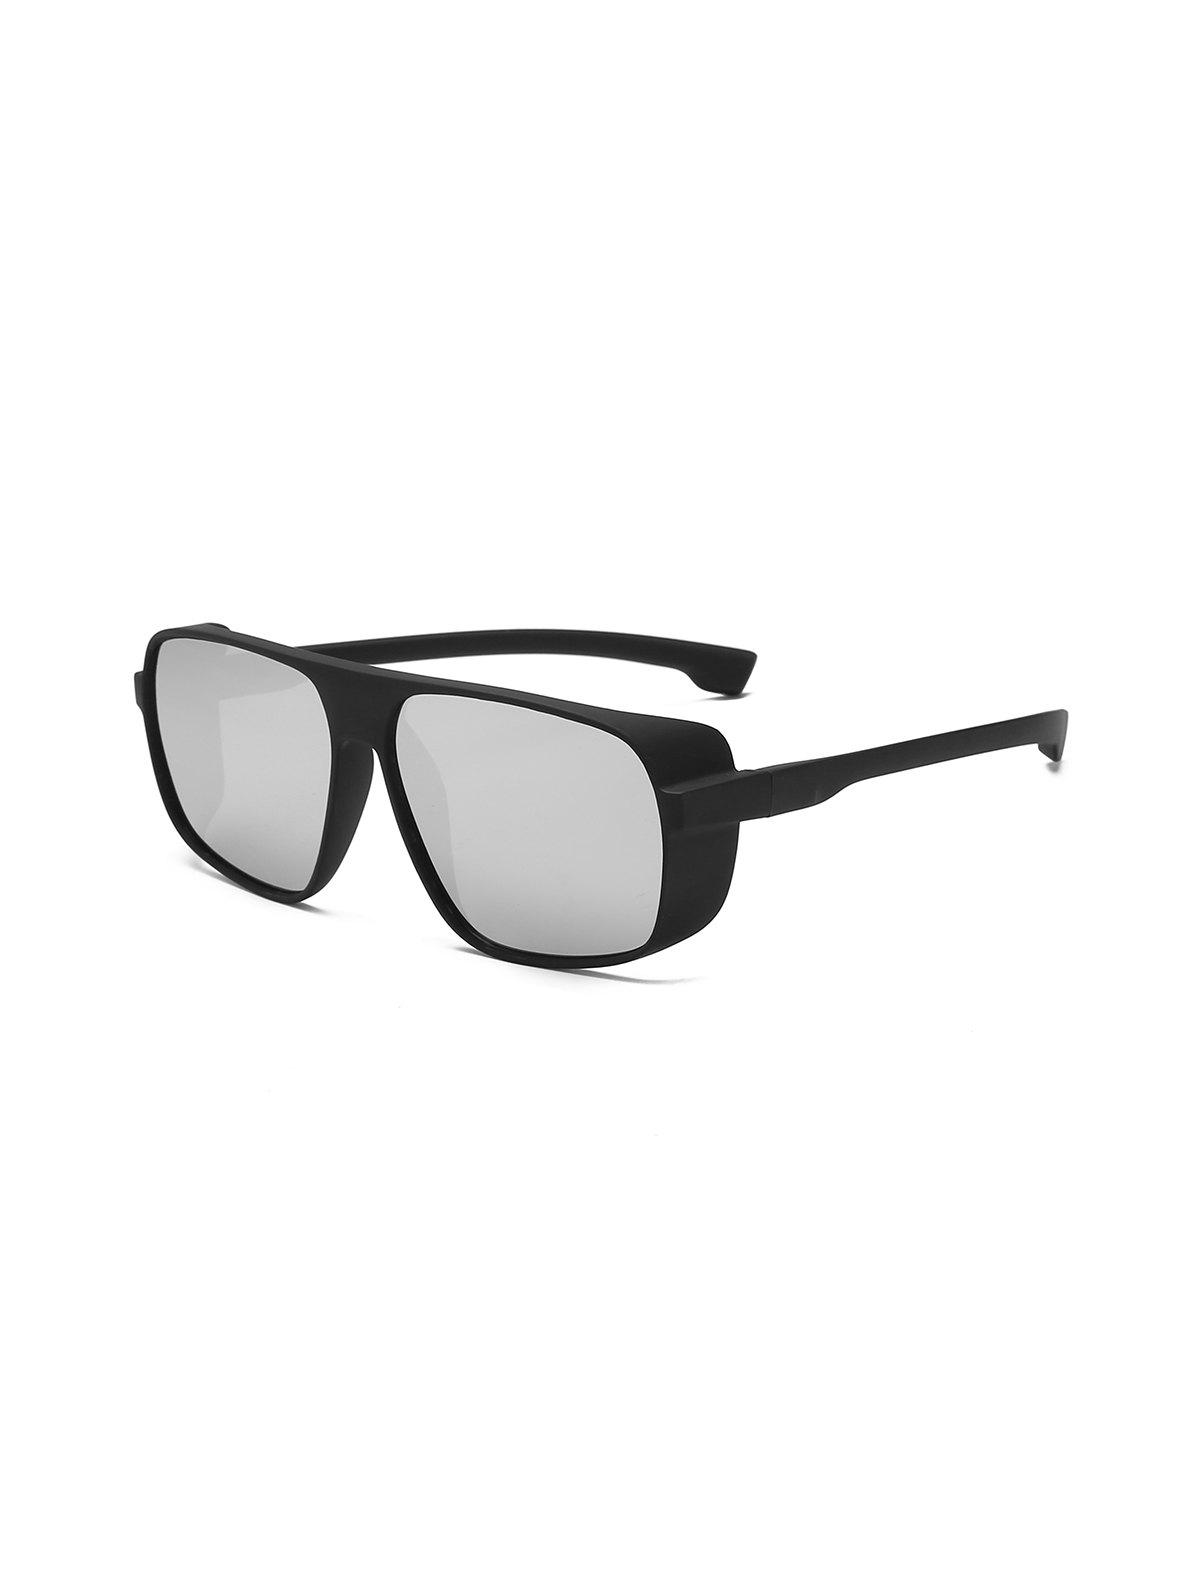 Hot Simple Outdoor Windproof Sports Sunglasses